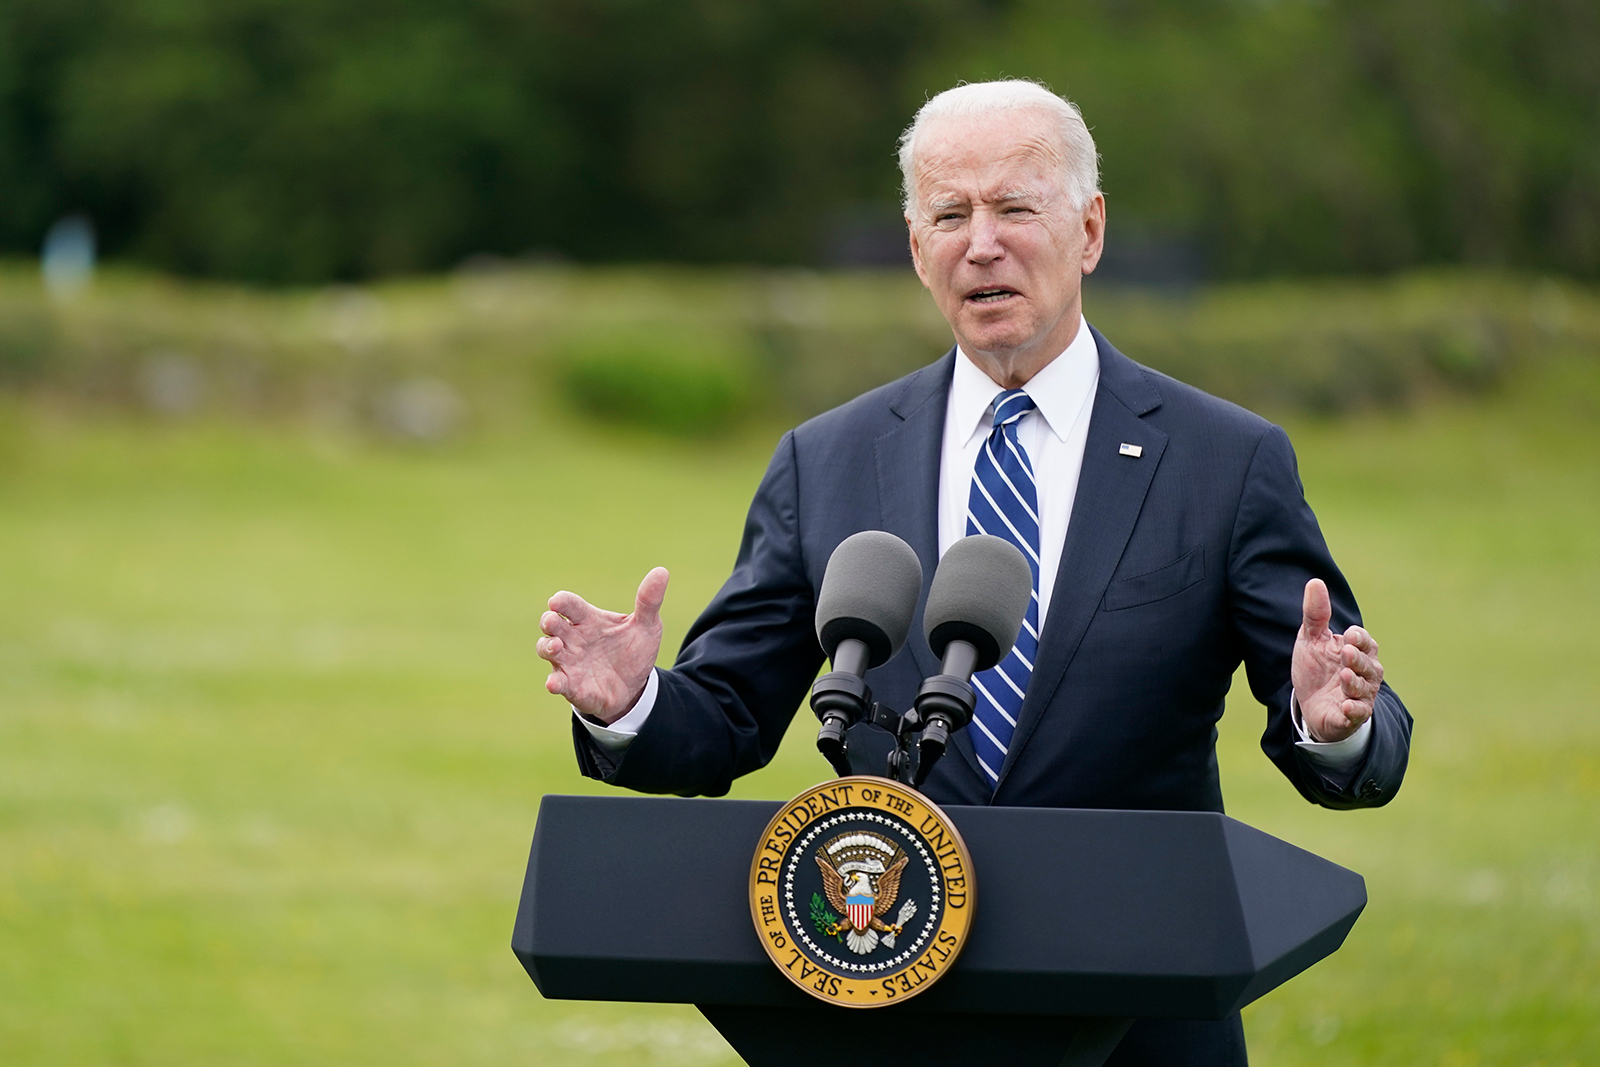 President Joe Biden speaks about his administration's global Covid-19 vaccination efforts ahead of the G-7 summit on Thursday, June 10, in St. Ives, England.